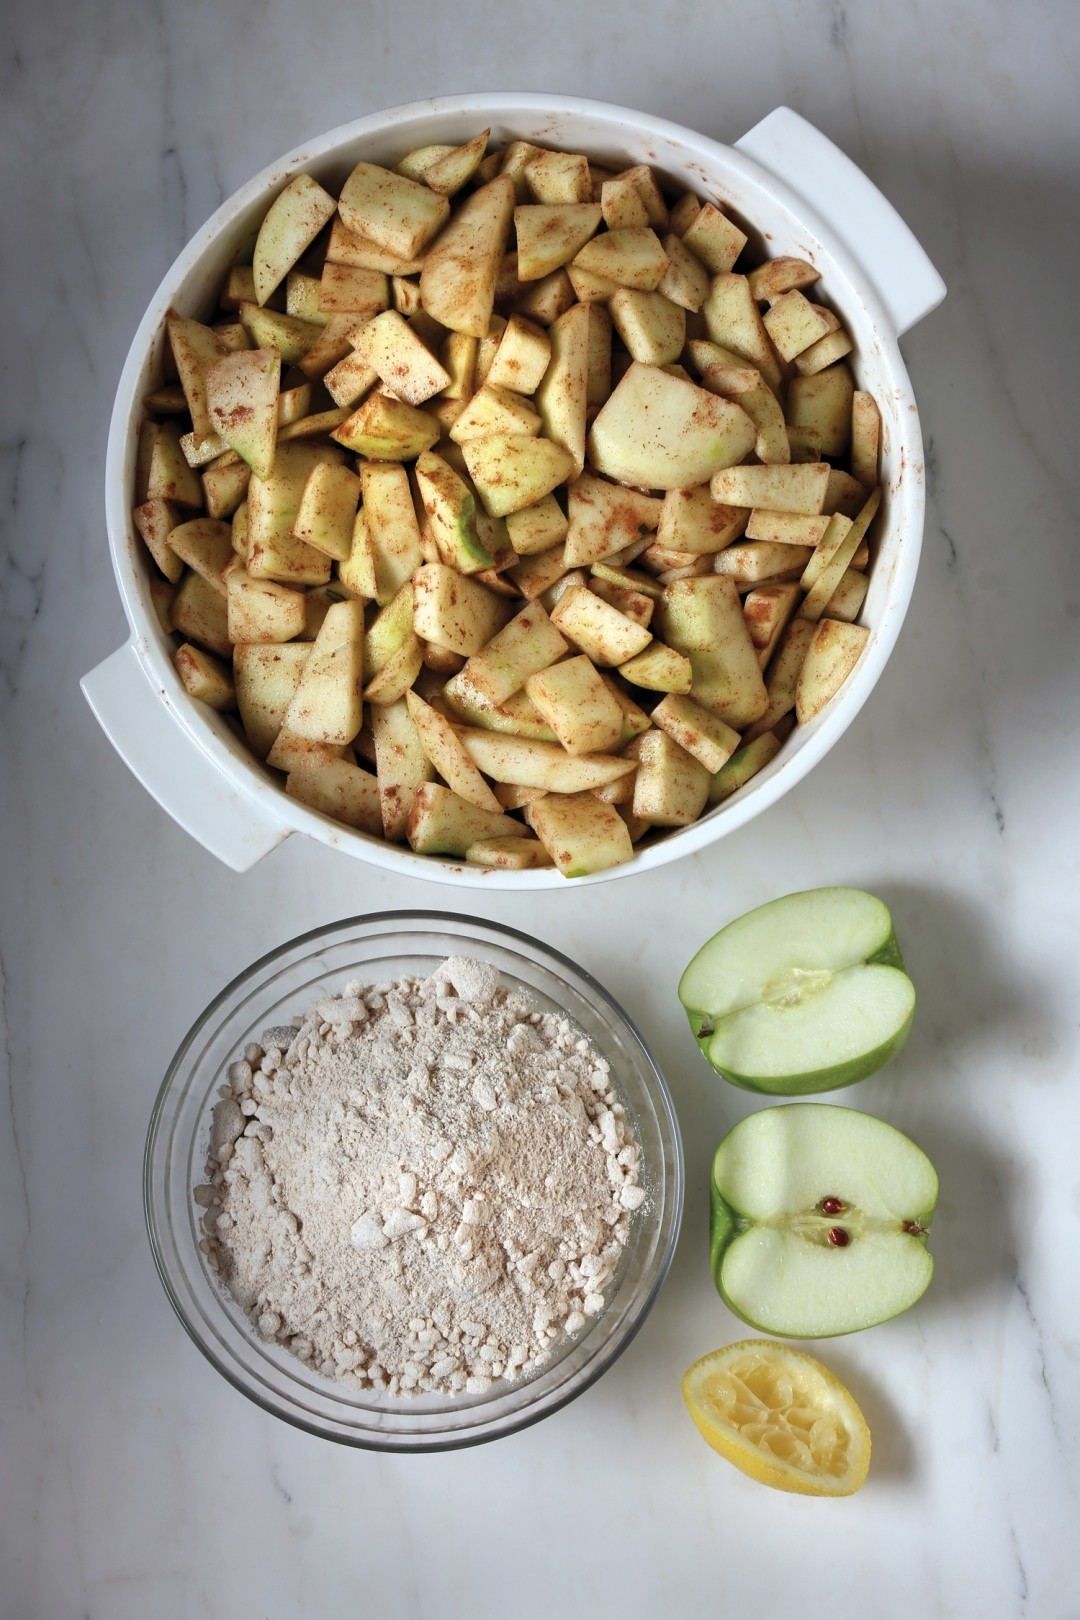 LE FRENCH OVEN Warm apple almond crumble